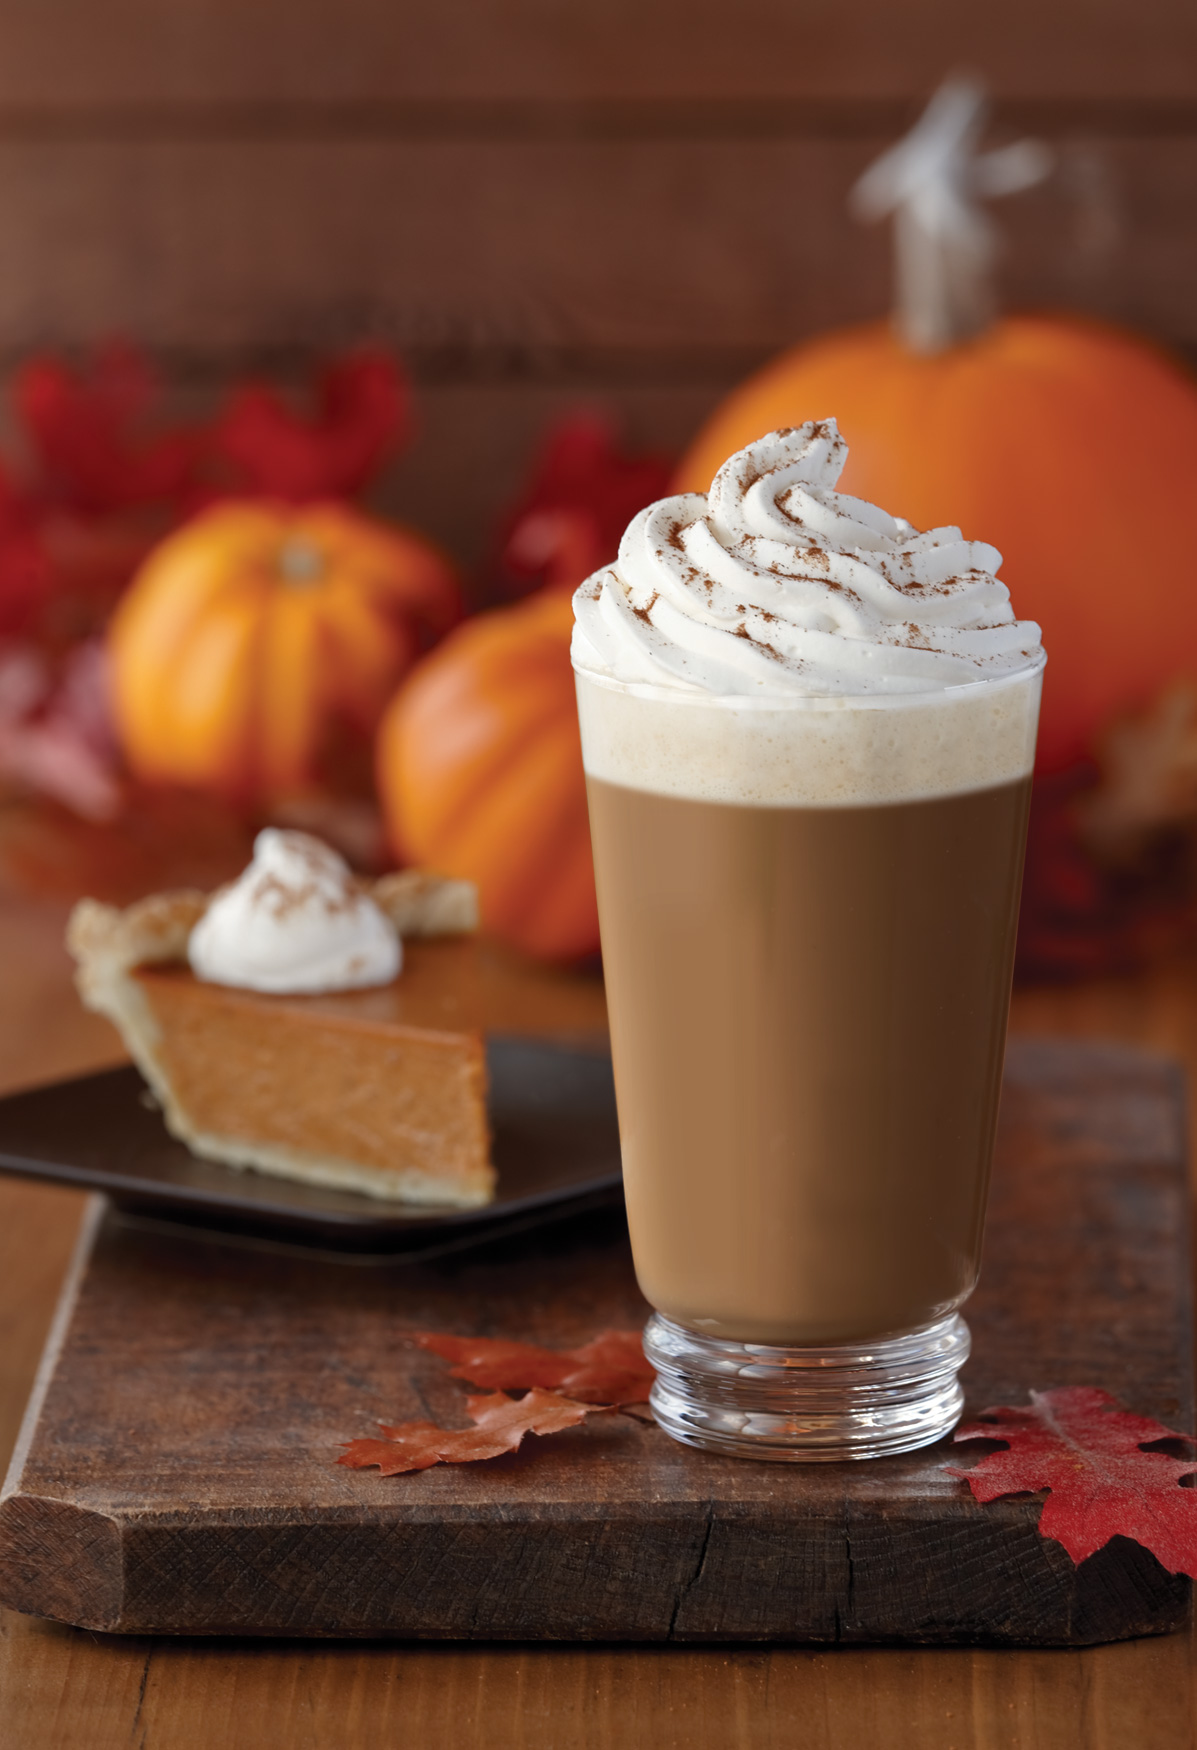 Fall Photo Wallpaper Sugar Free Pumpkin Pie Latte Milk Recipes And Other